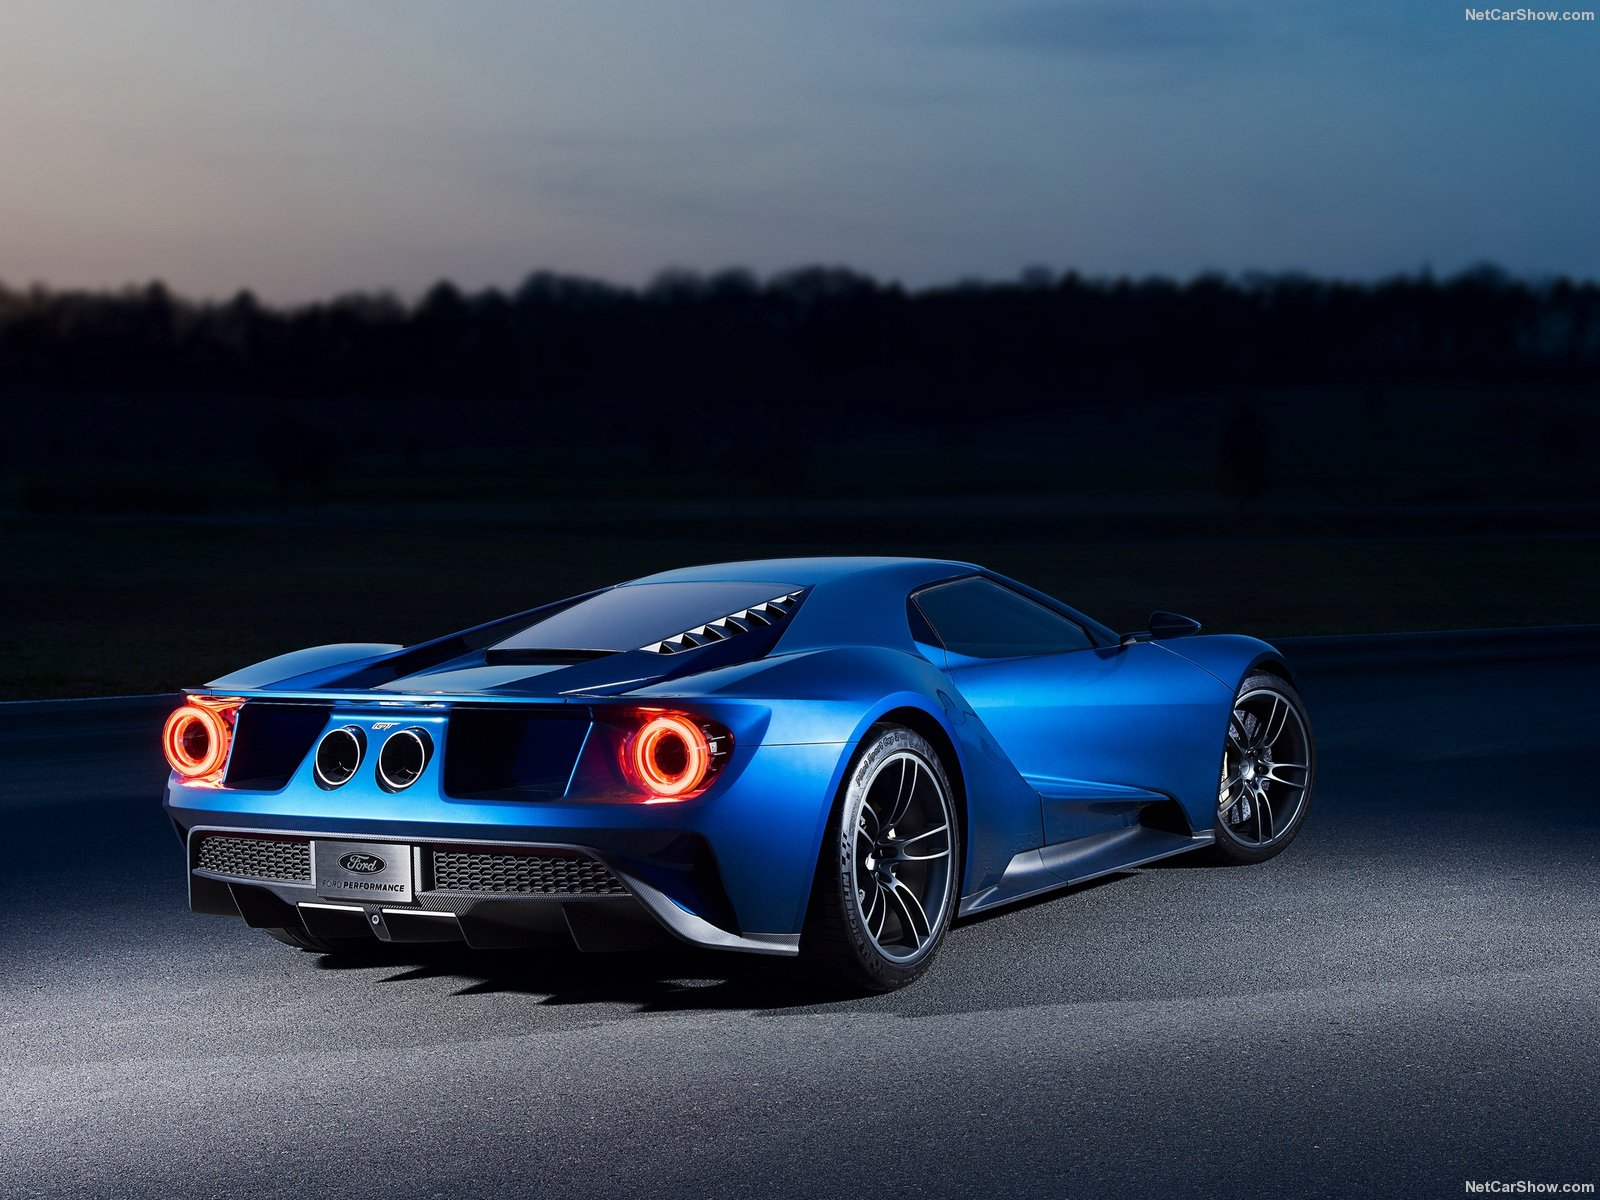 Ford-GT_2017_1600x1200_wallpaper_0c